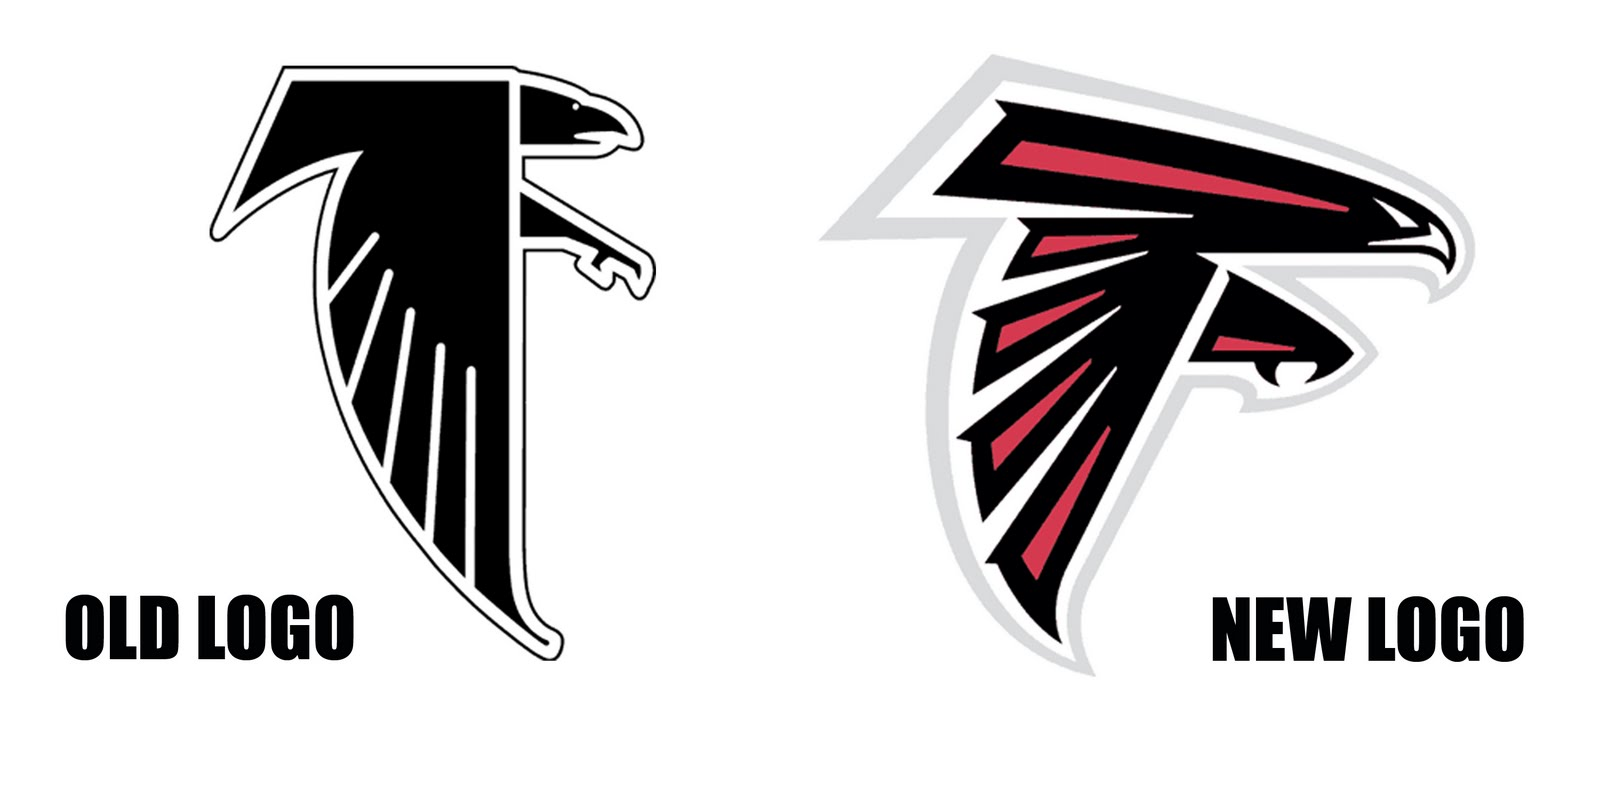 Images Of The Atlanta Falcons Football Logos: Carolina Panthers Change Logo For First Time In Team